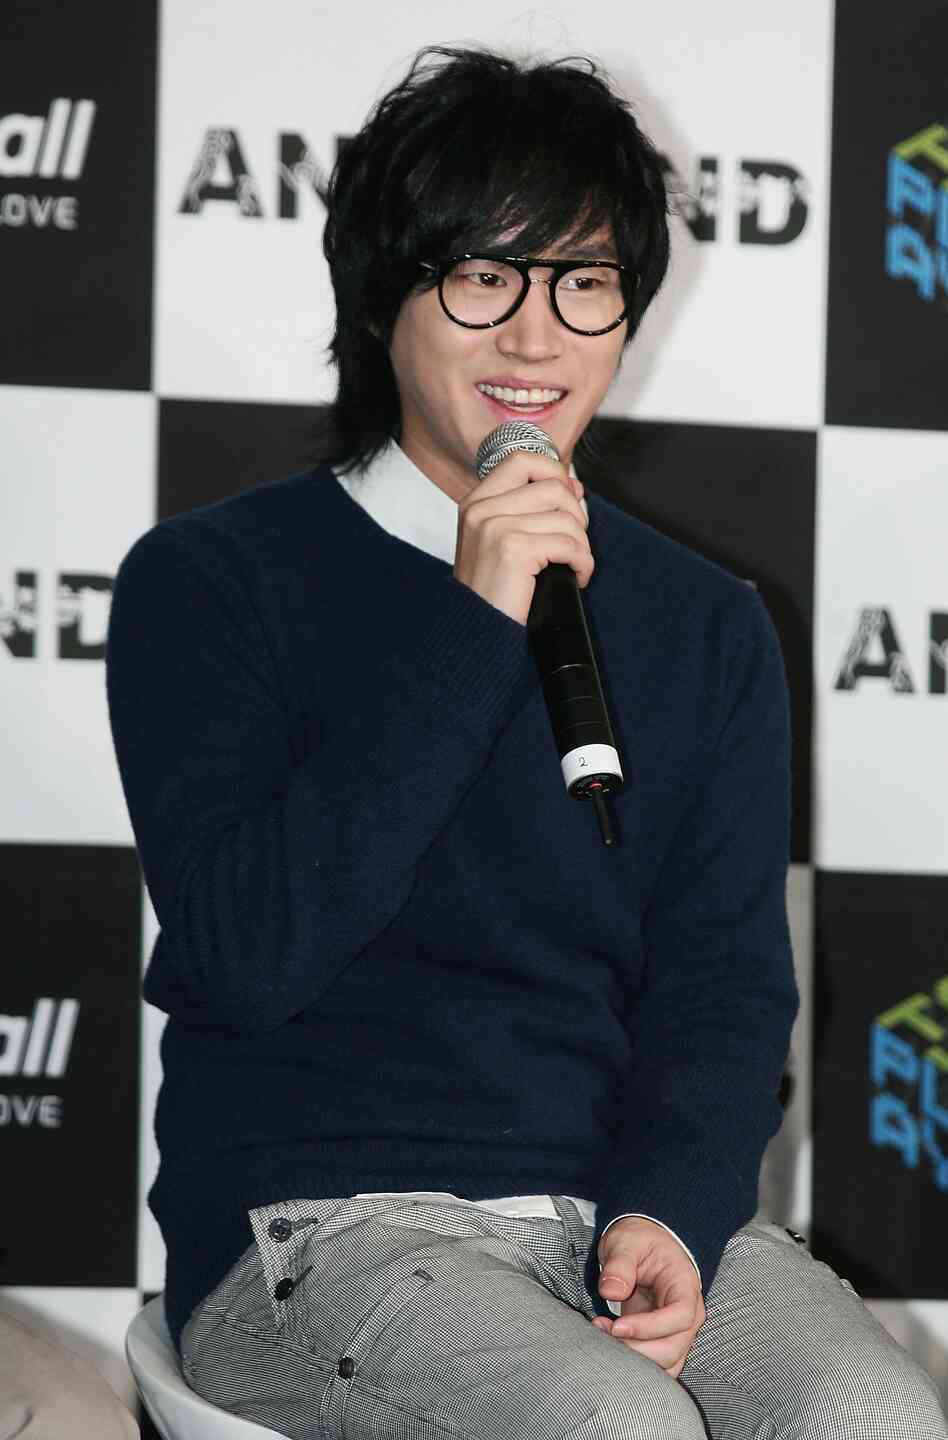 Tablo, also known as Dan Lee, really did earn both a bachelor's and a ma